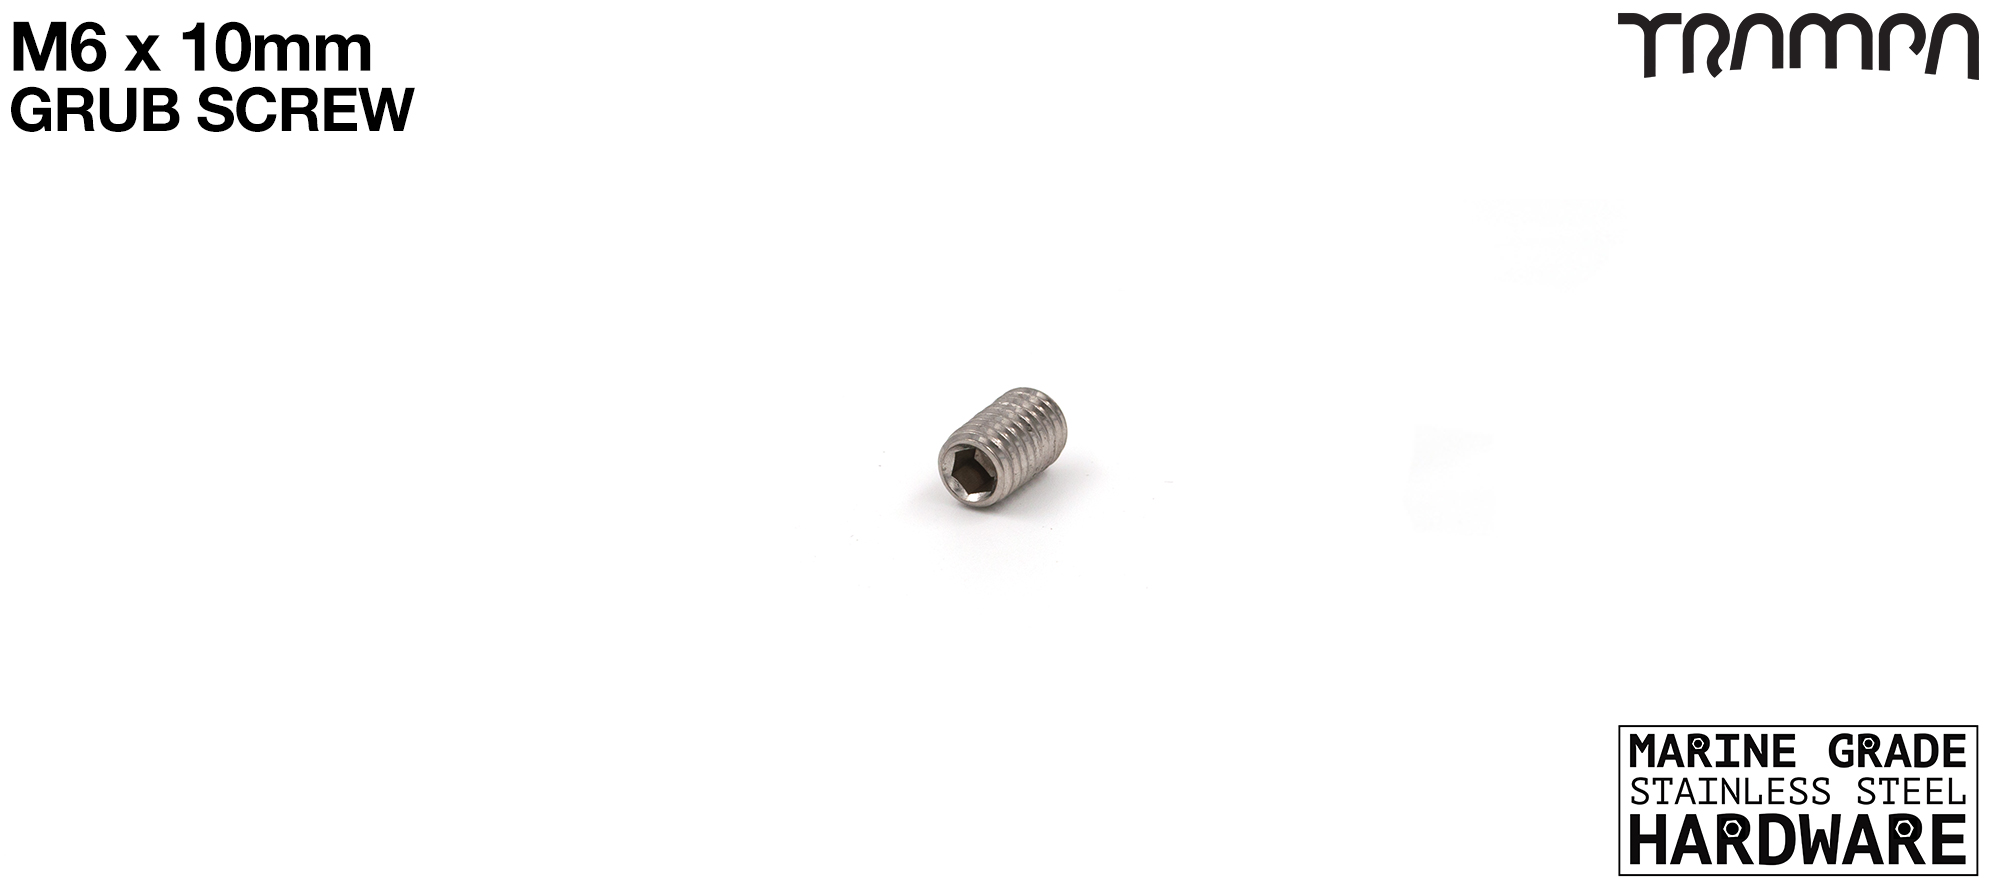 M6 x 10mm Grub Screw Marine Grade Stainless Steel - Locks Motor Mount to Hanger for Longboard Trucks